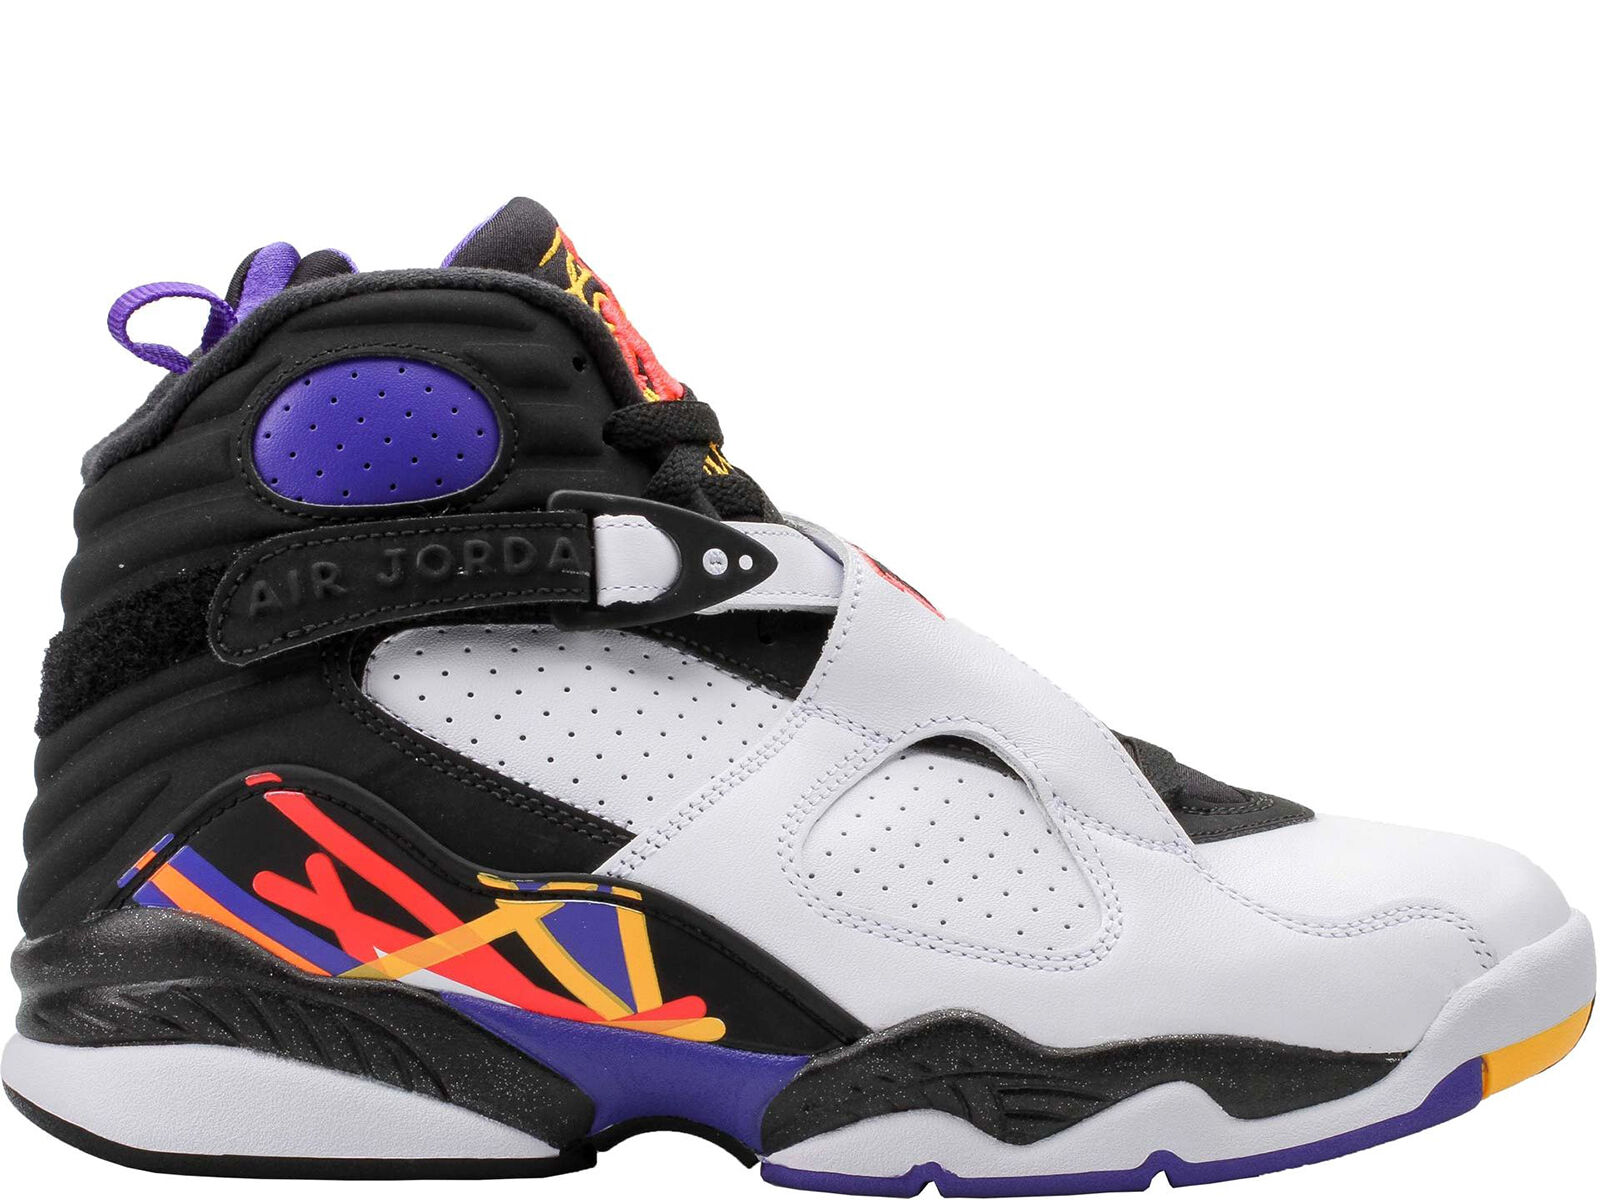 Men Brand New Air Jordan 8 Retro  3 Peat  Athletic Fashion Sneakers